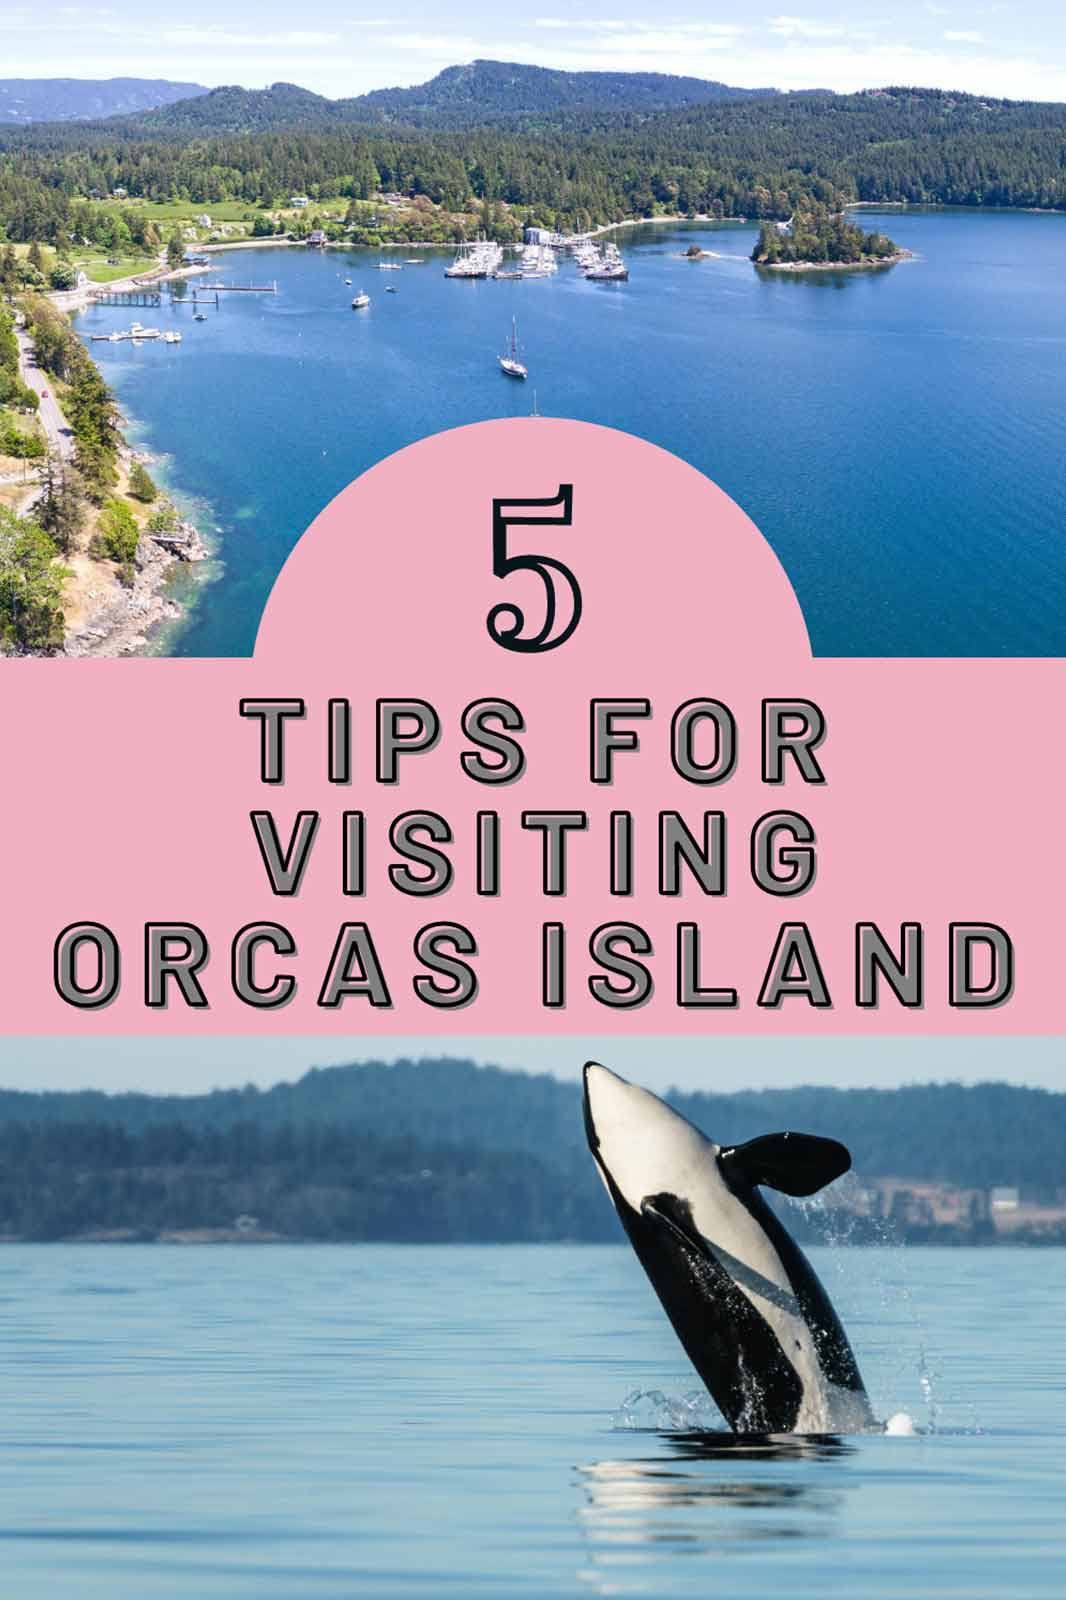 If you are ready to retreat to paradise, then read on for our 5 tips for visiting Orcas Island.